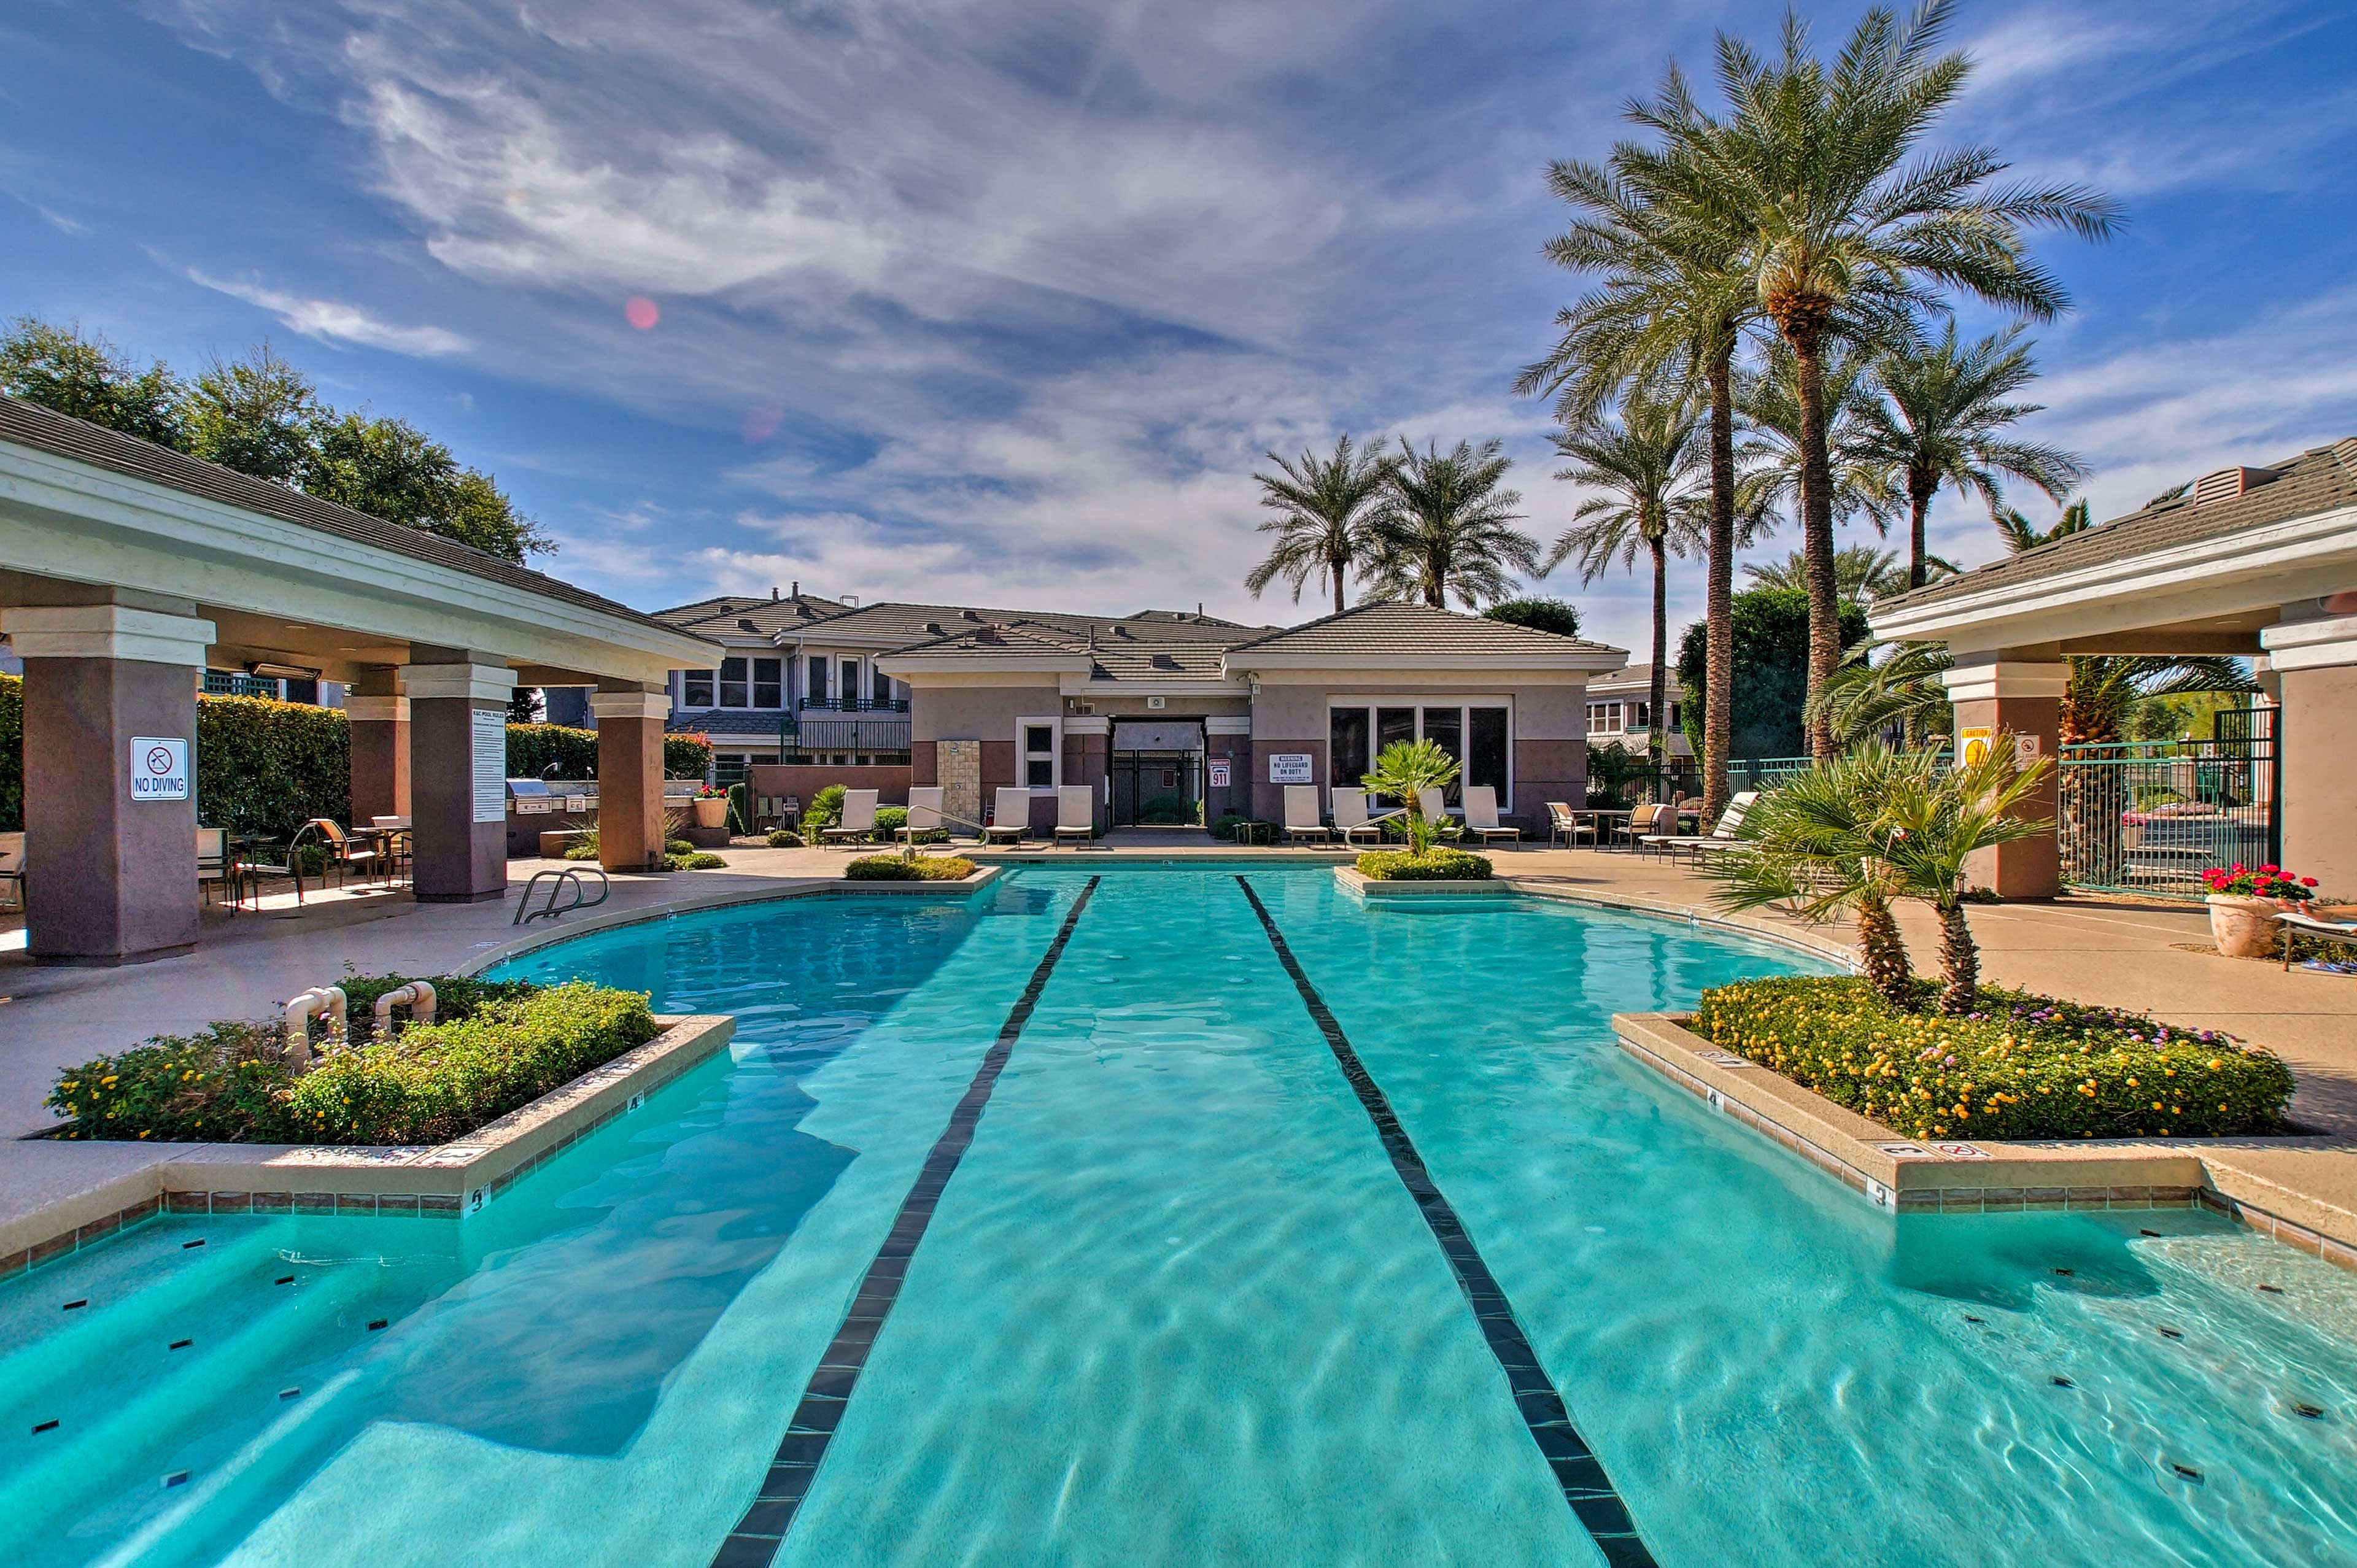 Soak up the sun in this Scottsdale townhome for 4!